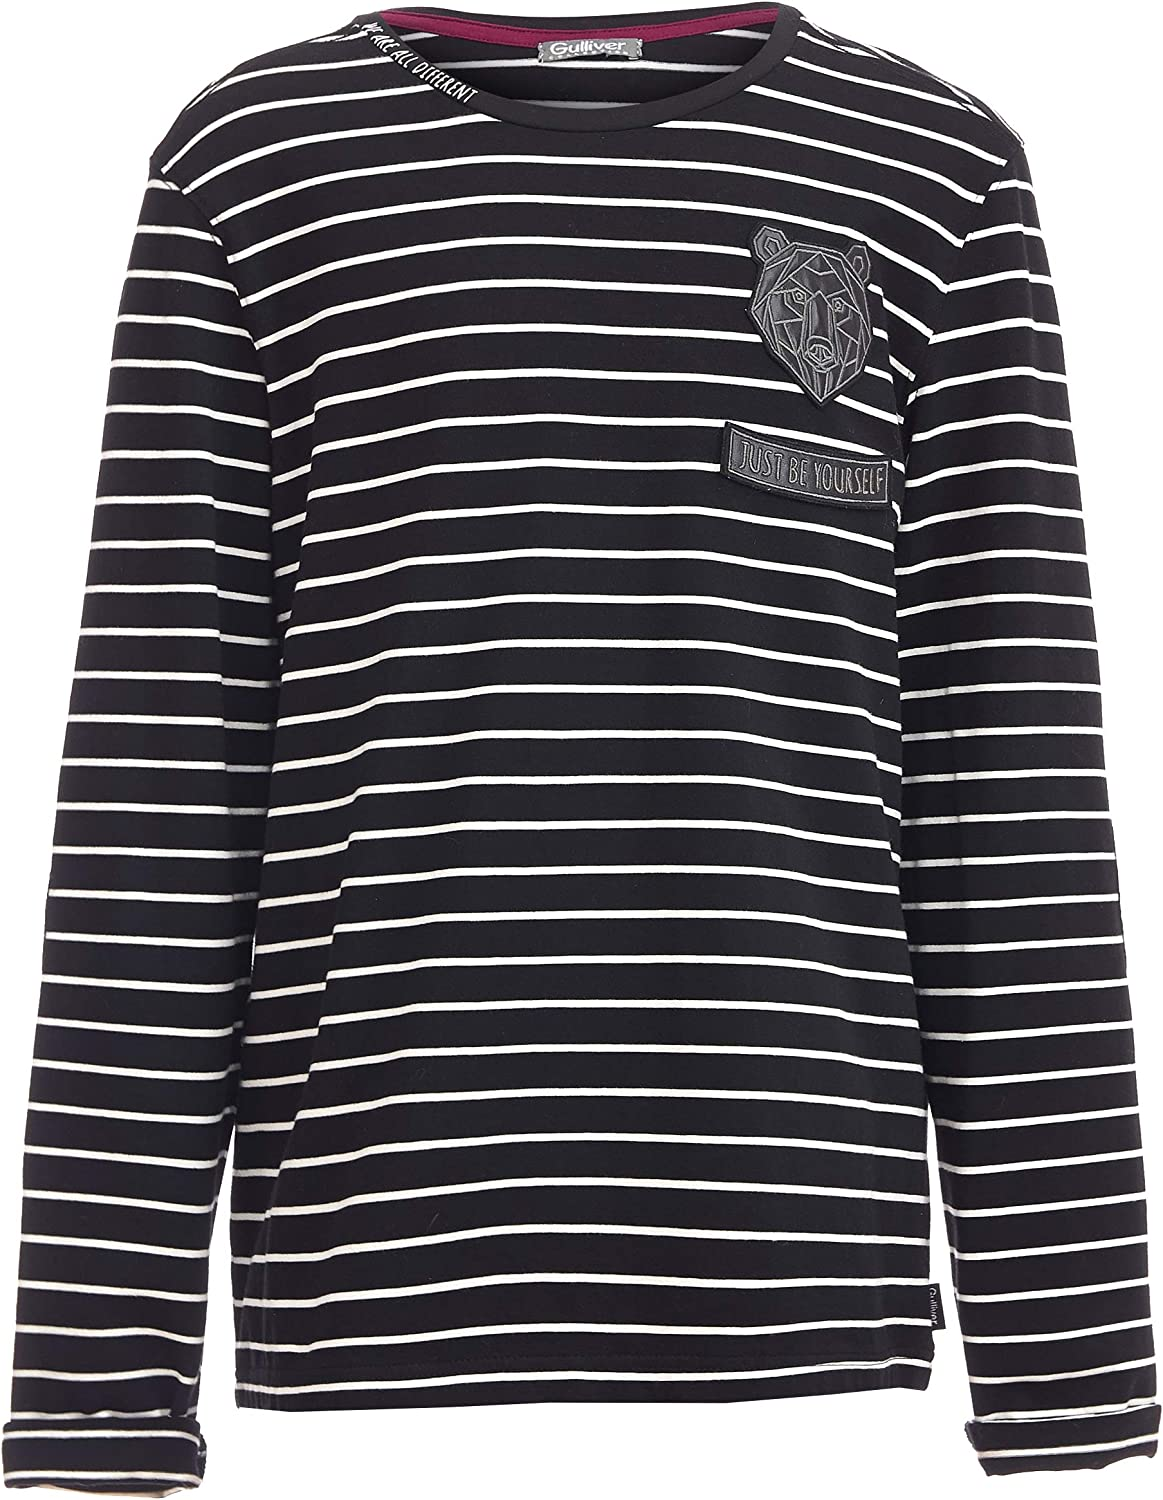 Casual Marine Regular Fit Colour Black for 11-14 Years Cotton Round Neck Elbow Patches Long Sleeve GULLIVER Teen Boys Long Sleeve T-Shirt Striped Animal Patch